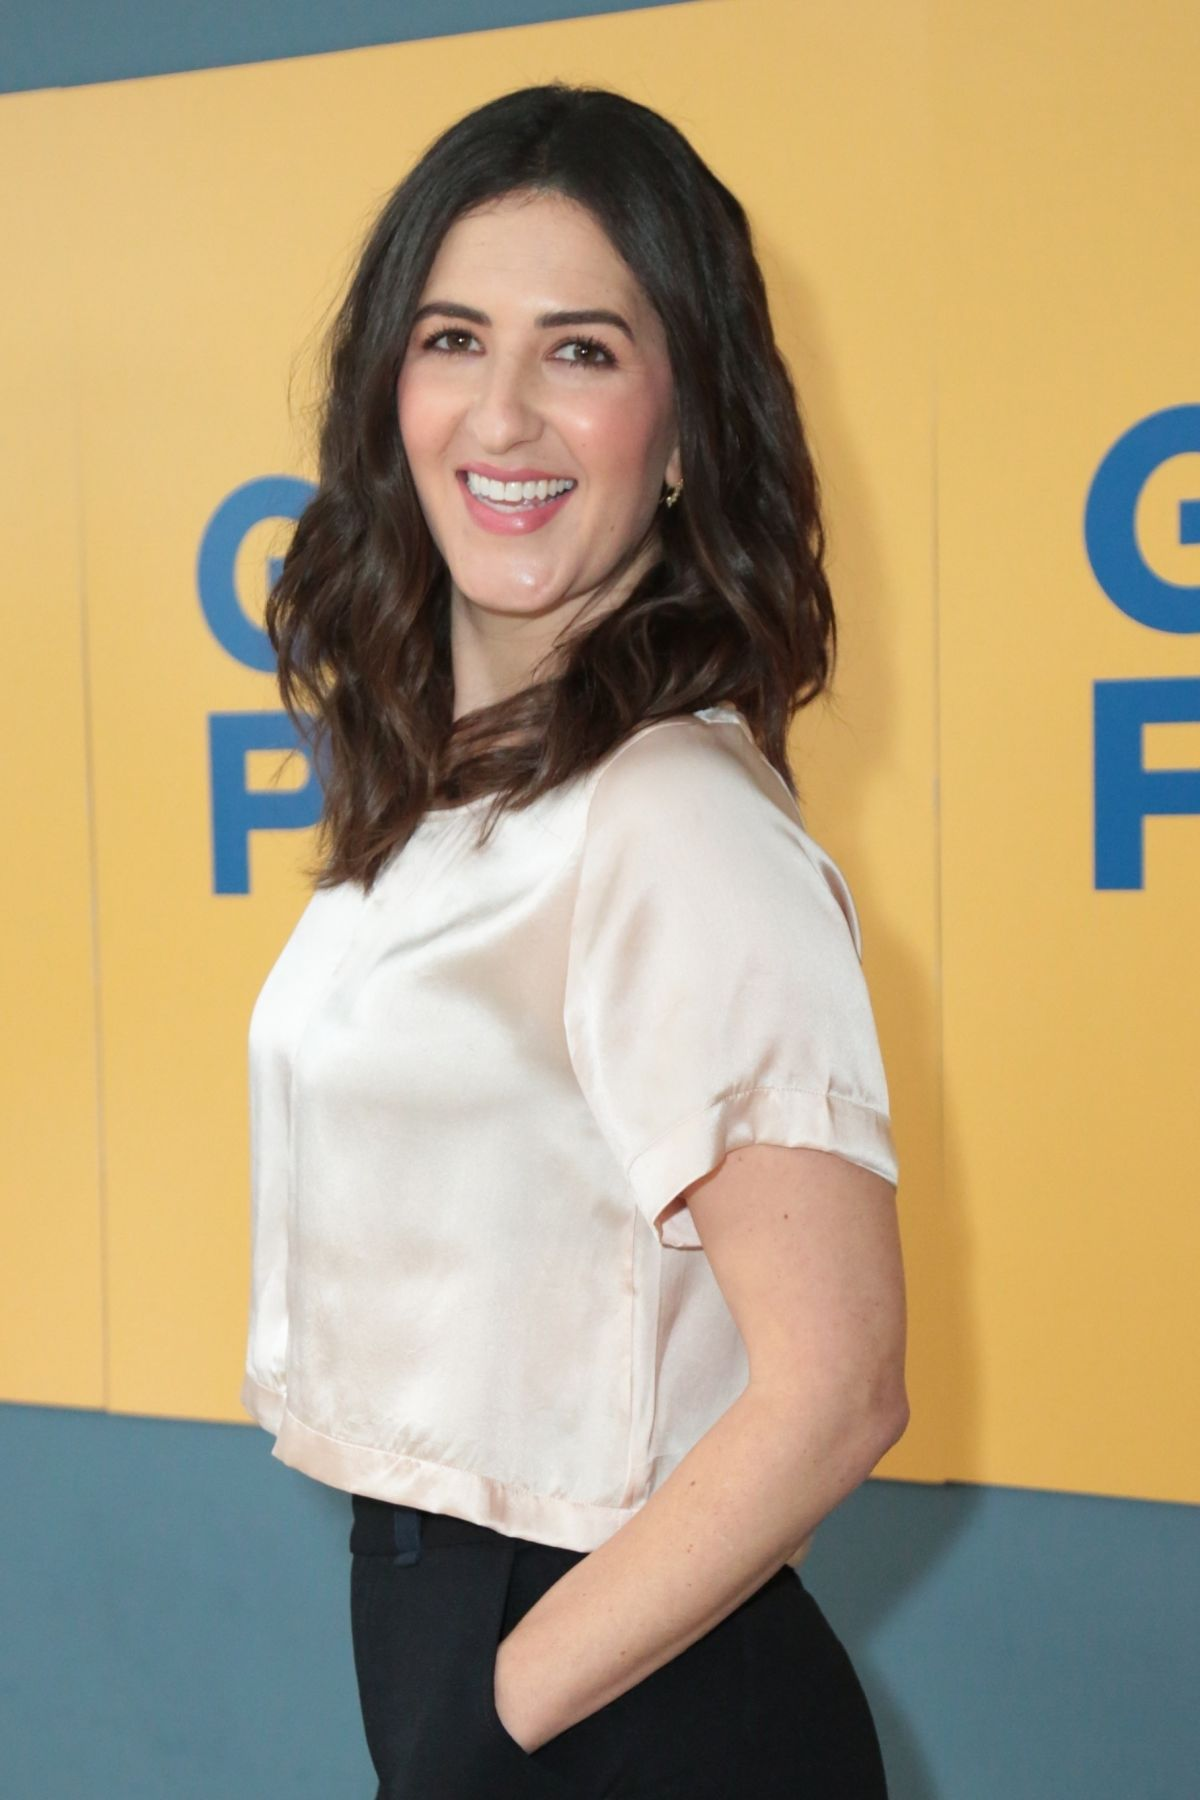 Darcy carden the good place fyc event in los angeles nude (81 pics)